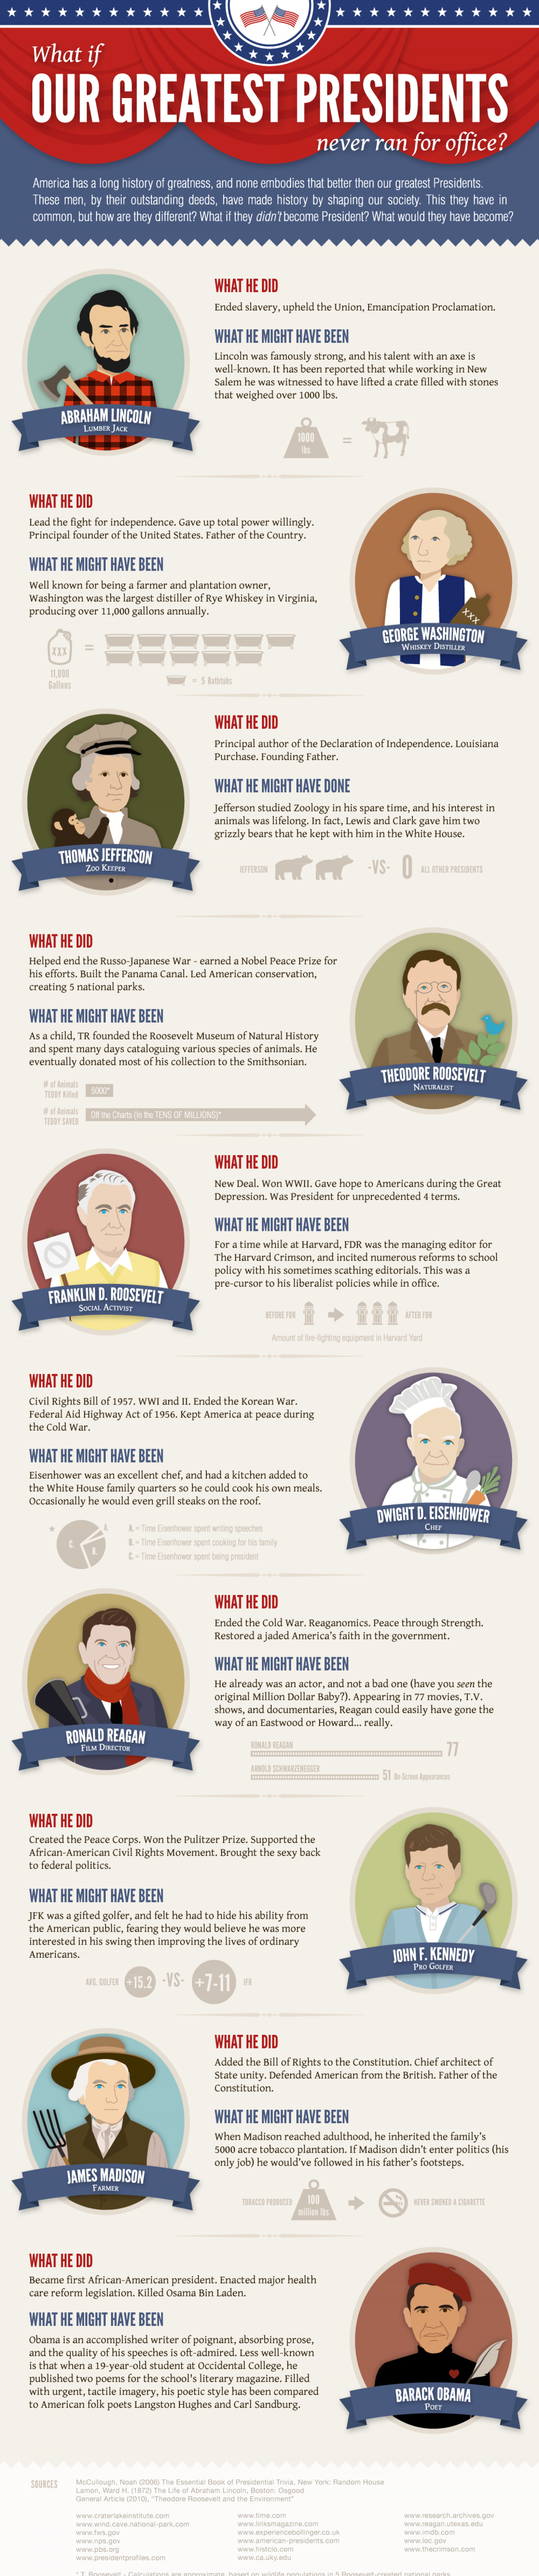 What If Our Greatest Presidents Never Ran For Office? Infographic